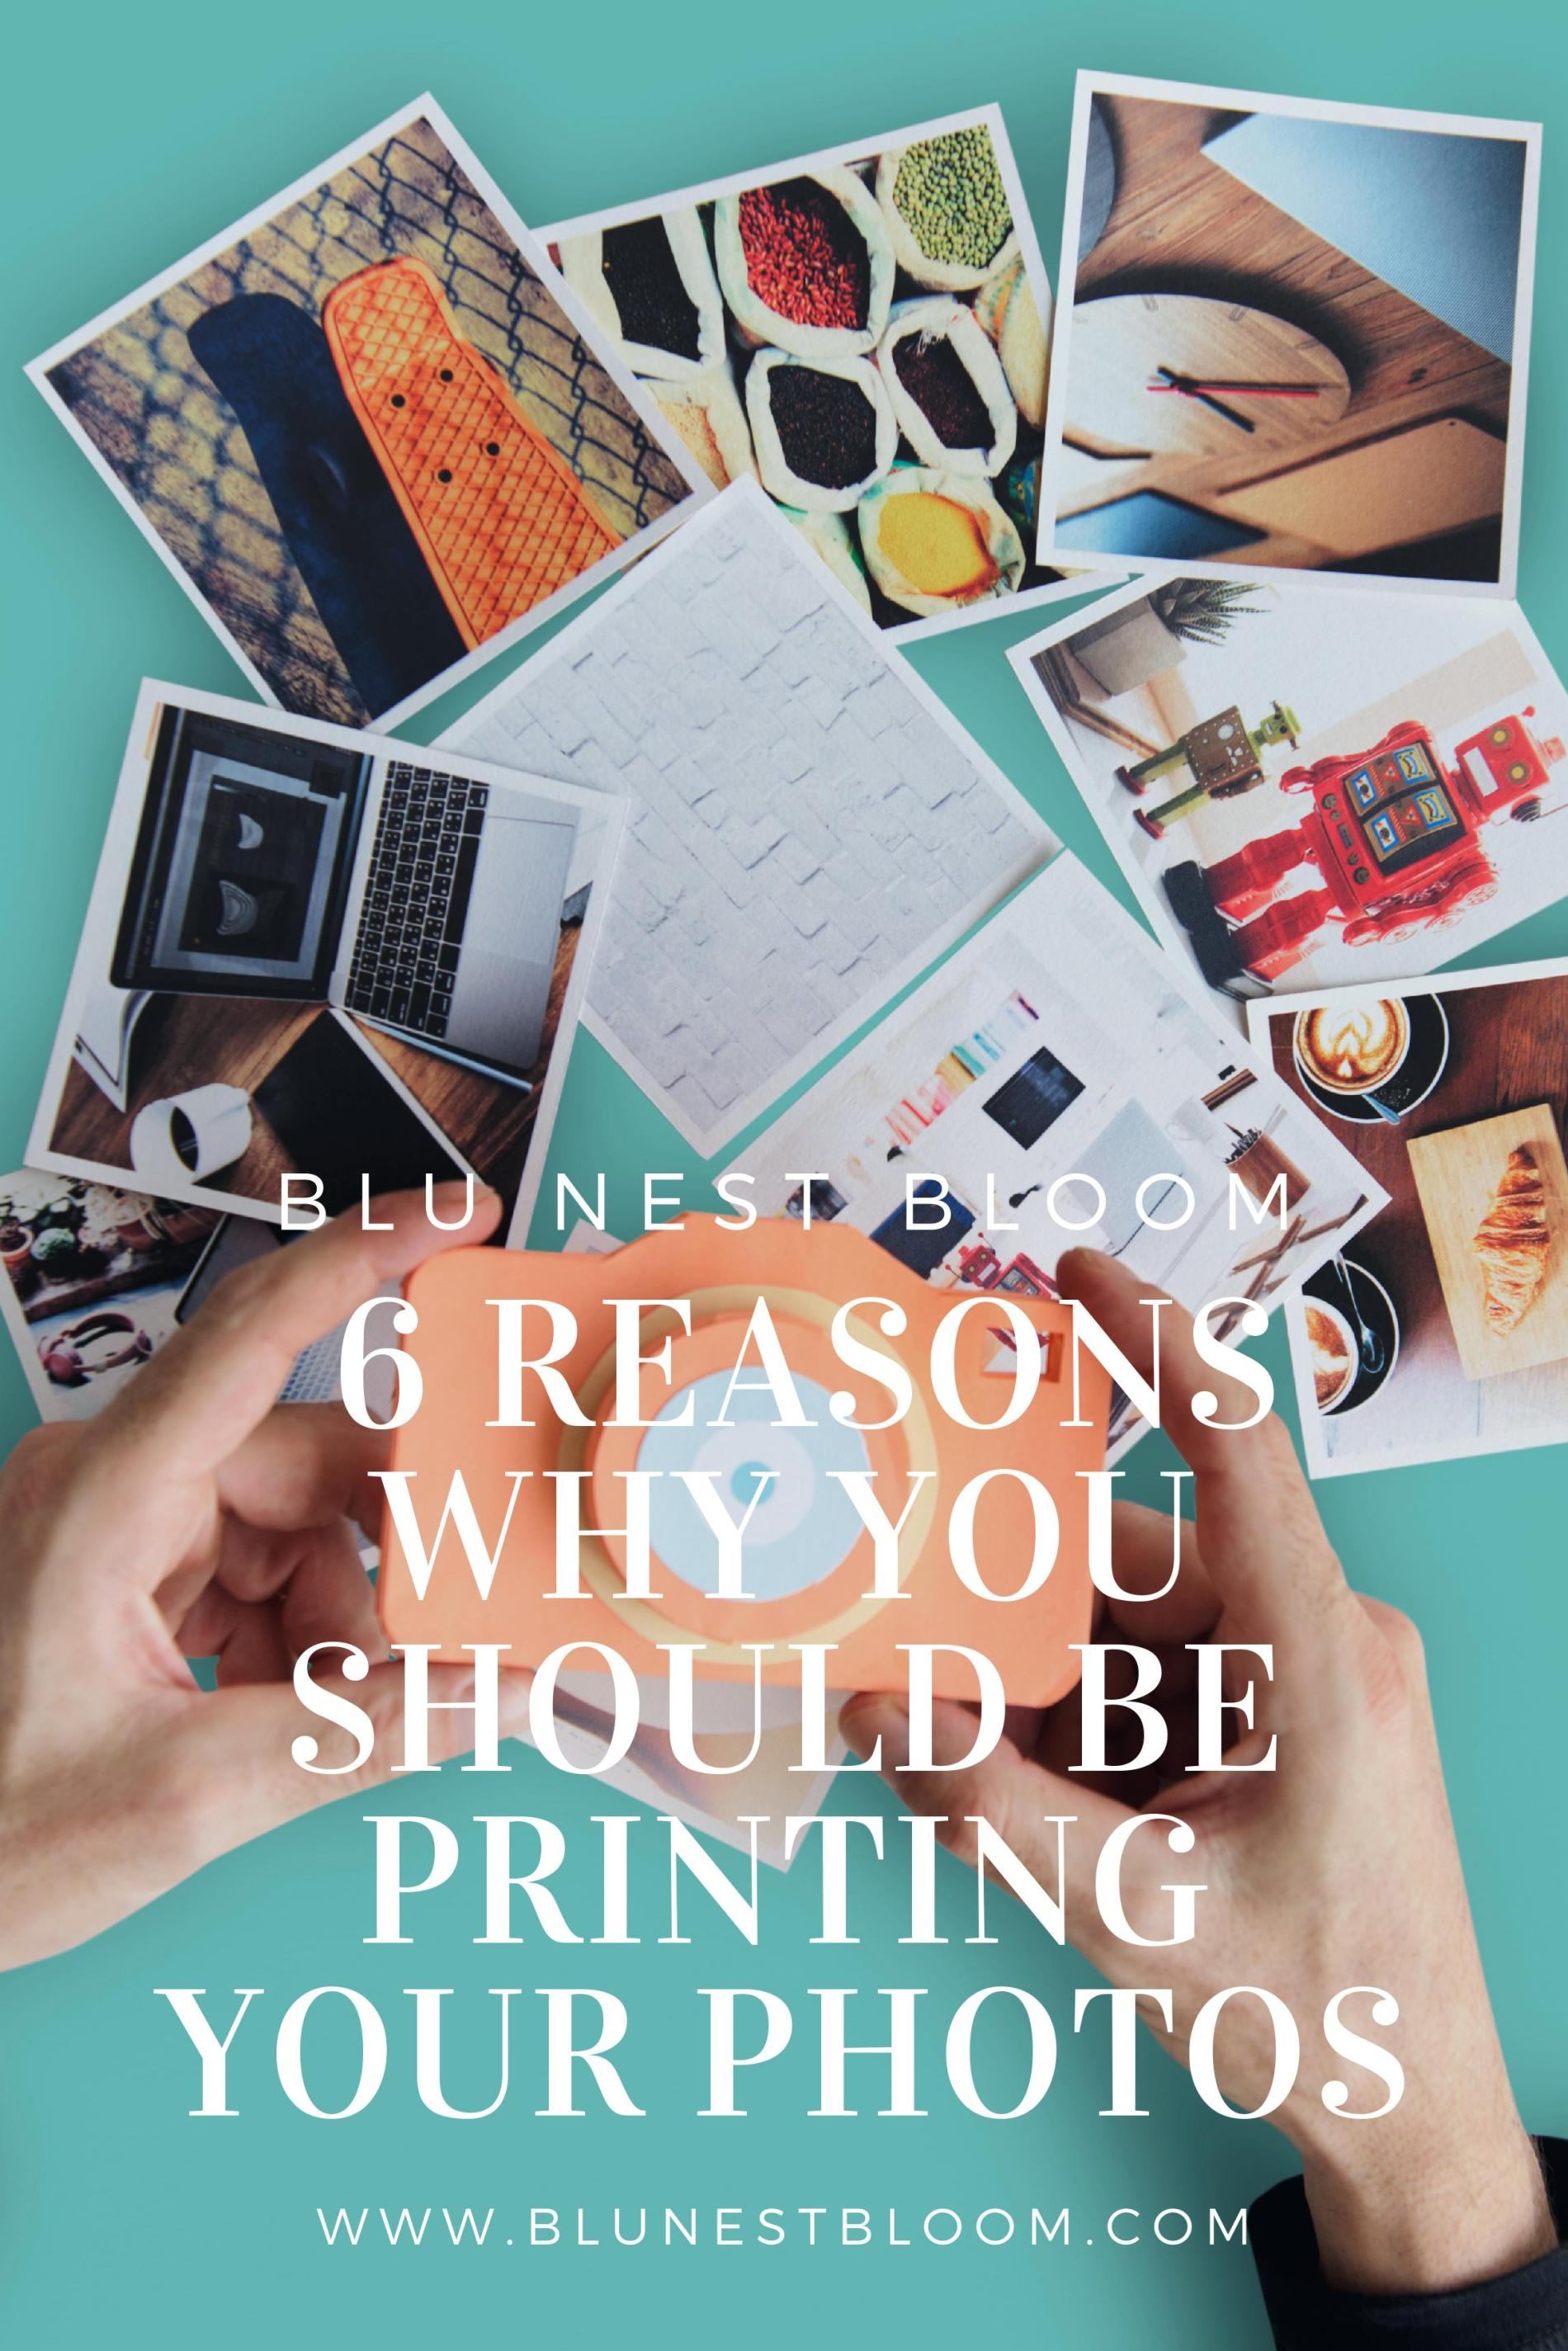 6 Reasons Why You Should Print Your Photos